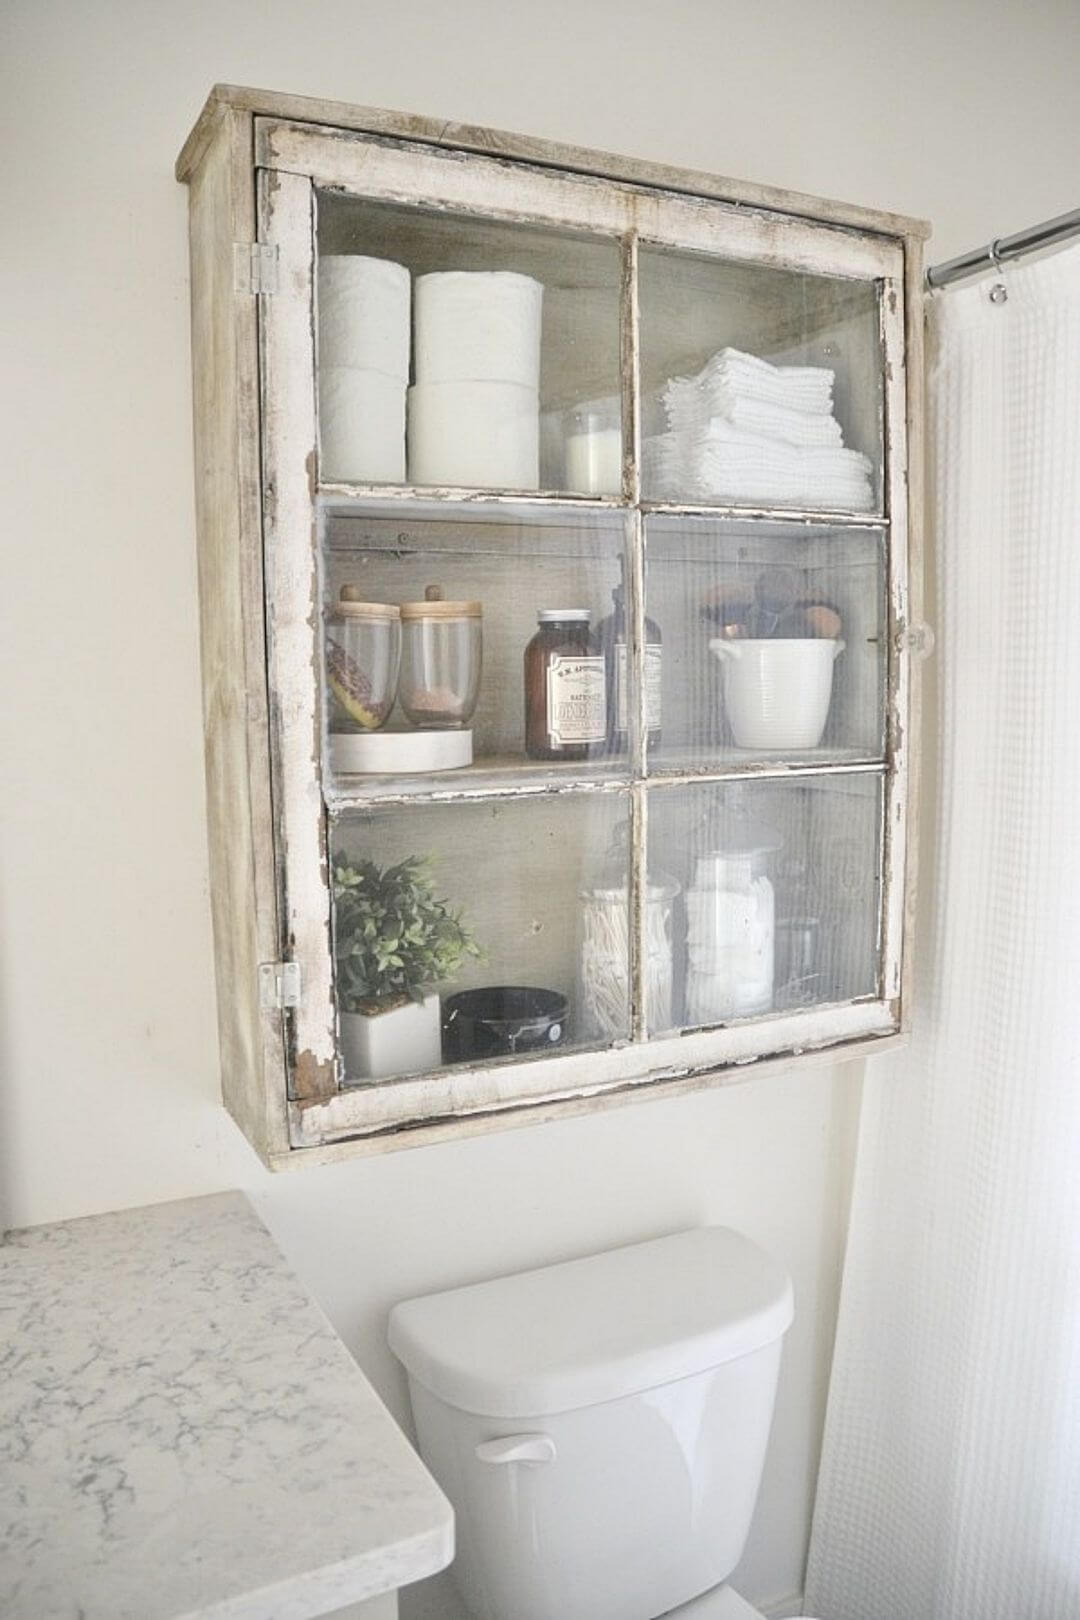 Upcycled Over-Toilet Bathroom Storage Cabinet